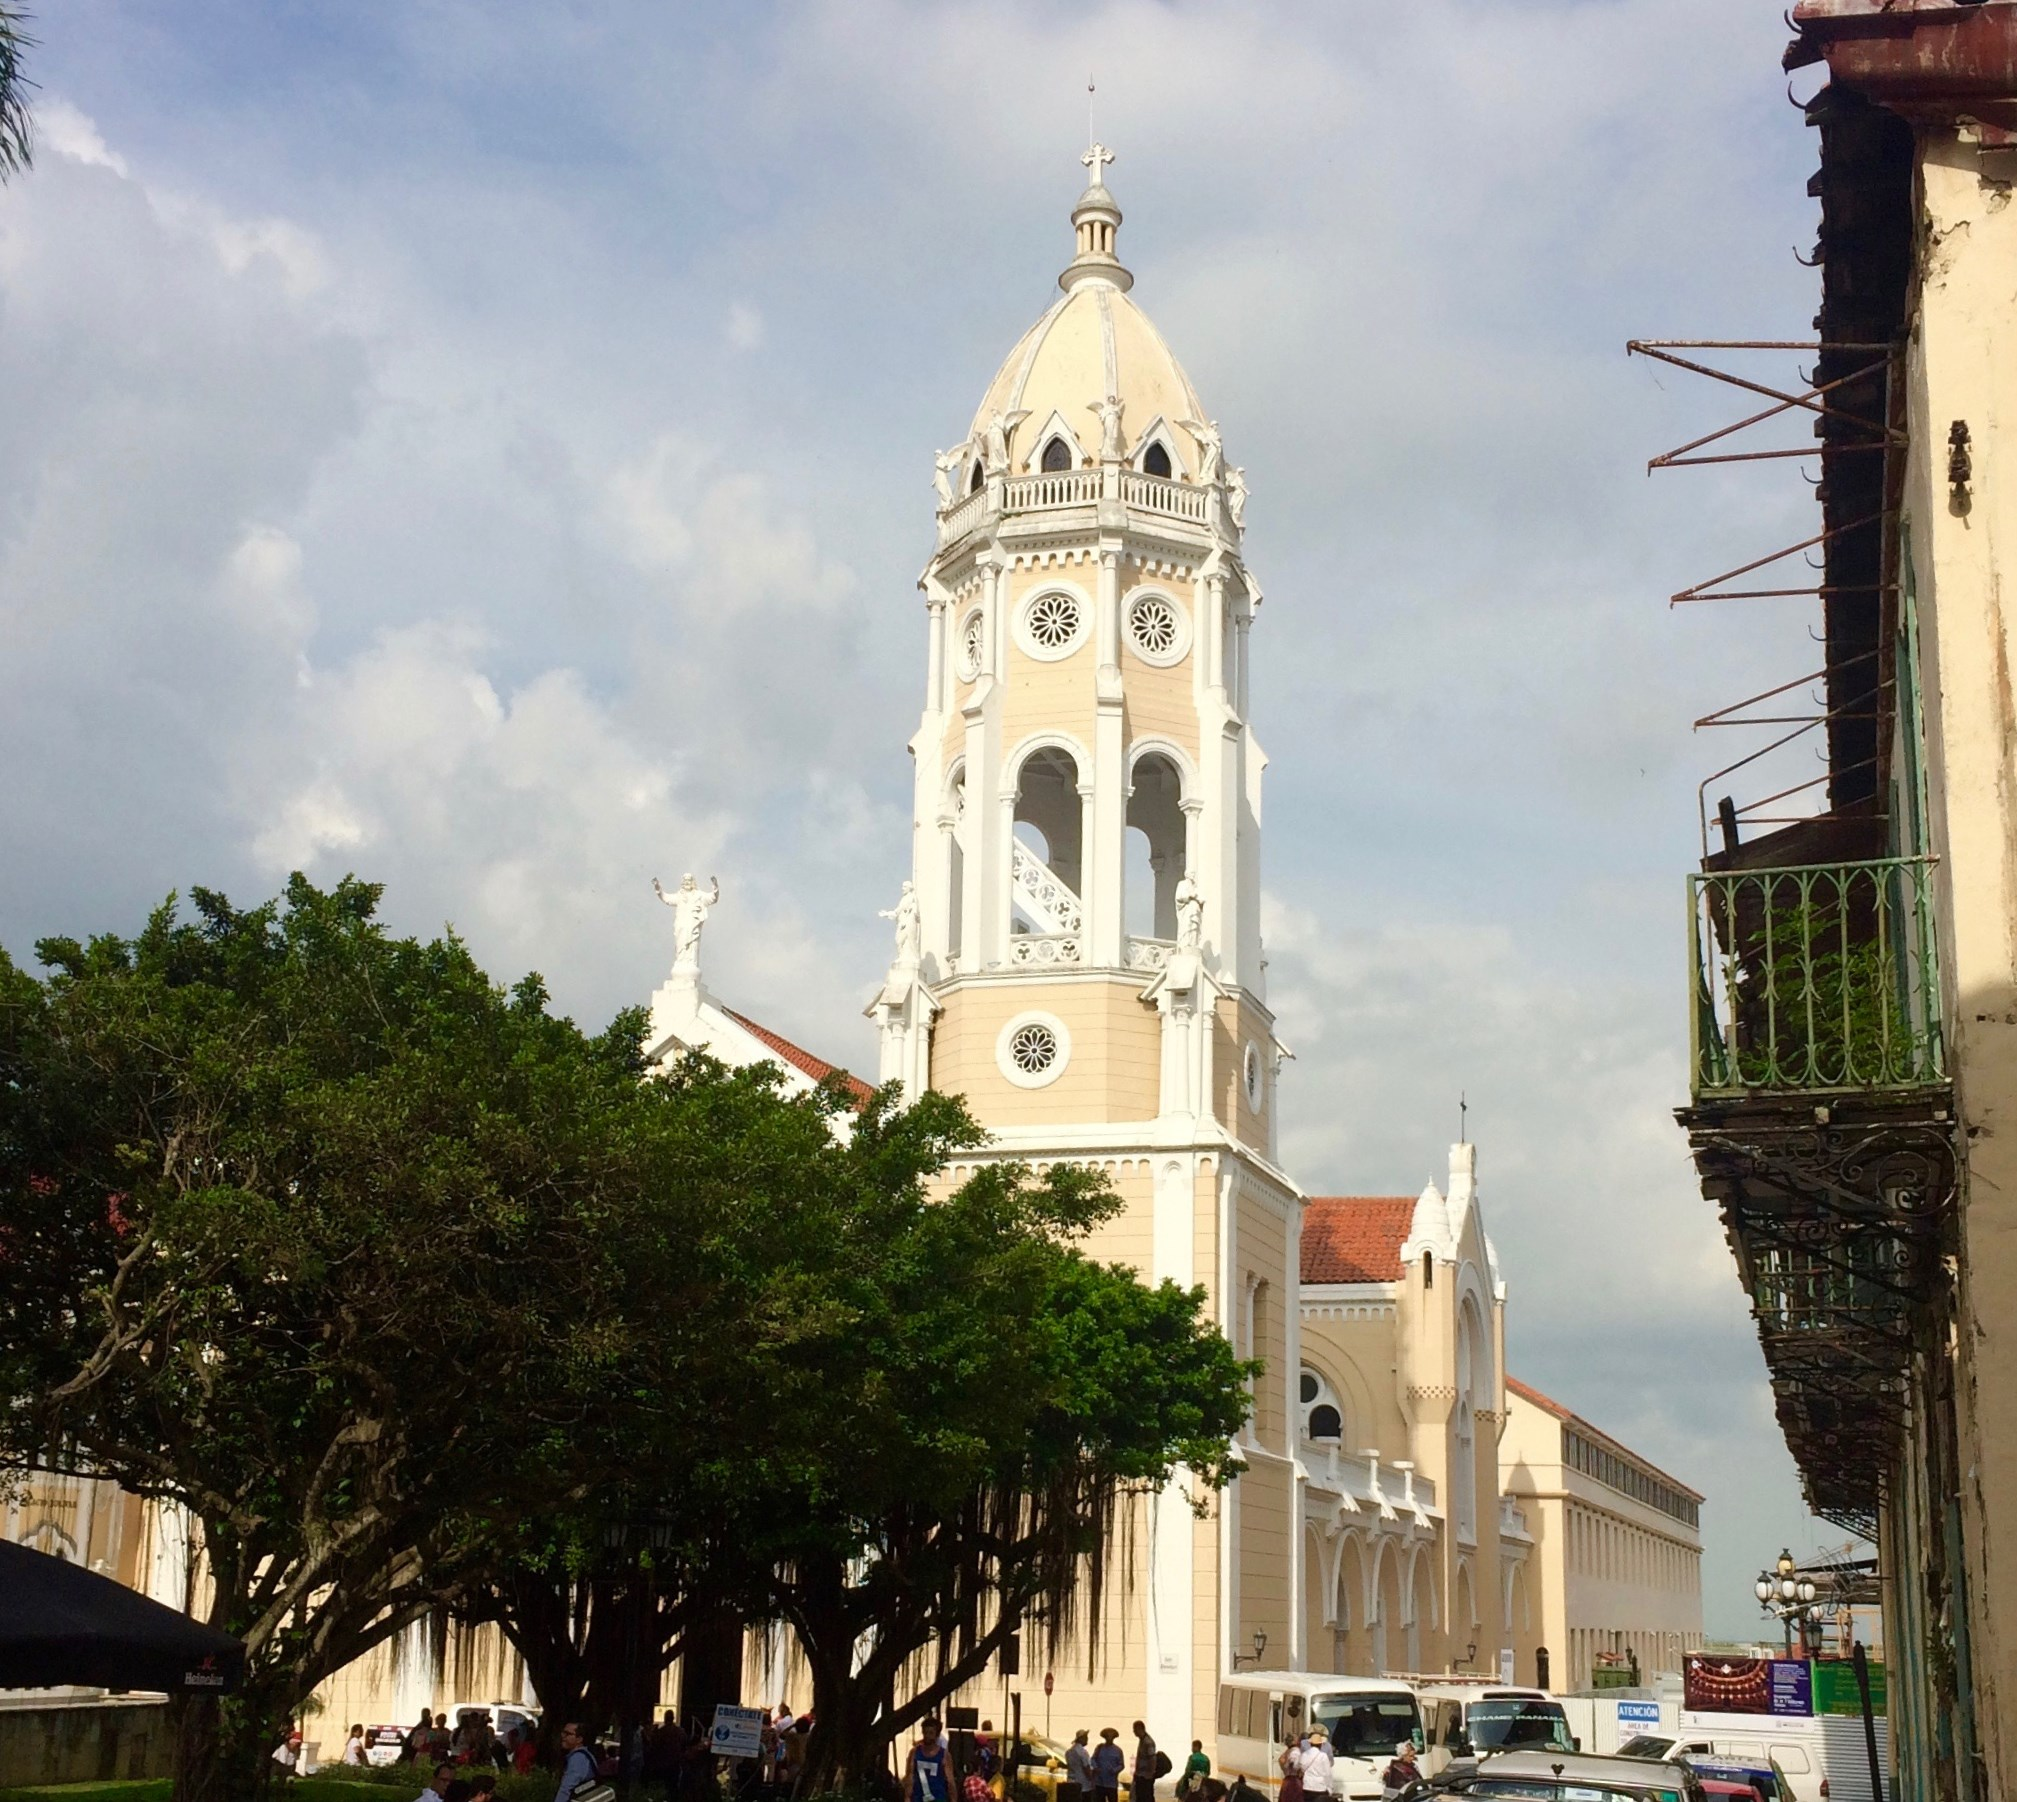 Casco-Viejo-Parque-Balboa-Church-2017 Discovering Casco Viejo, Panama Panama Panama City